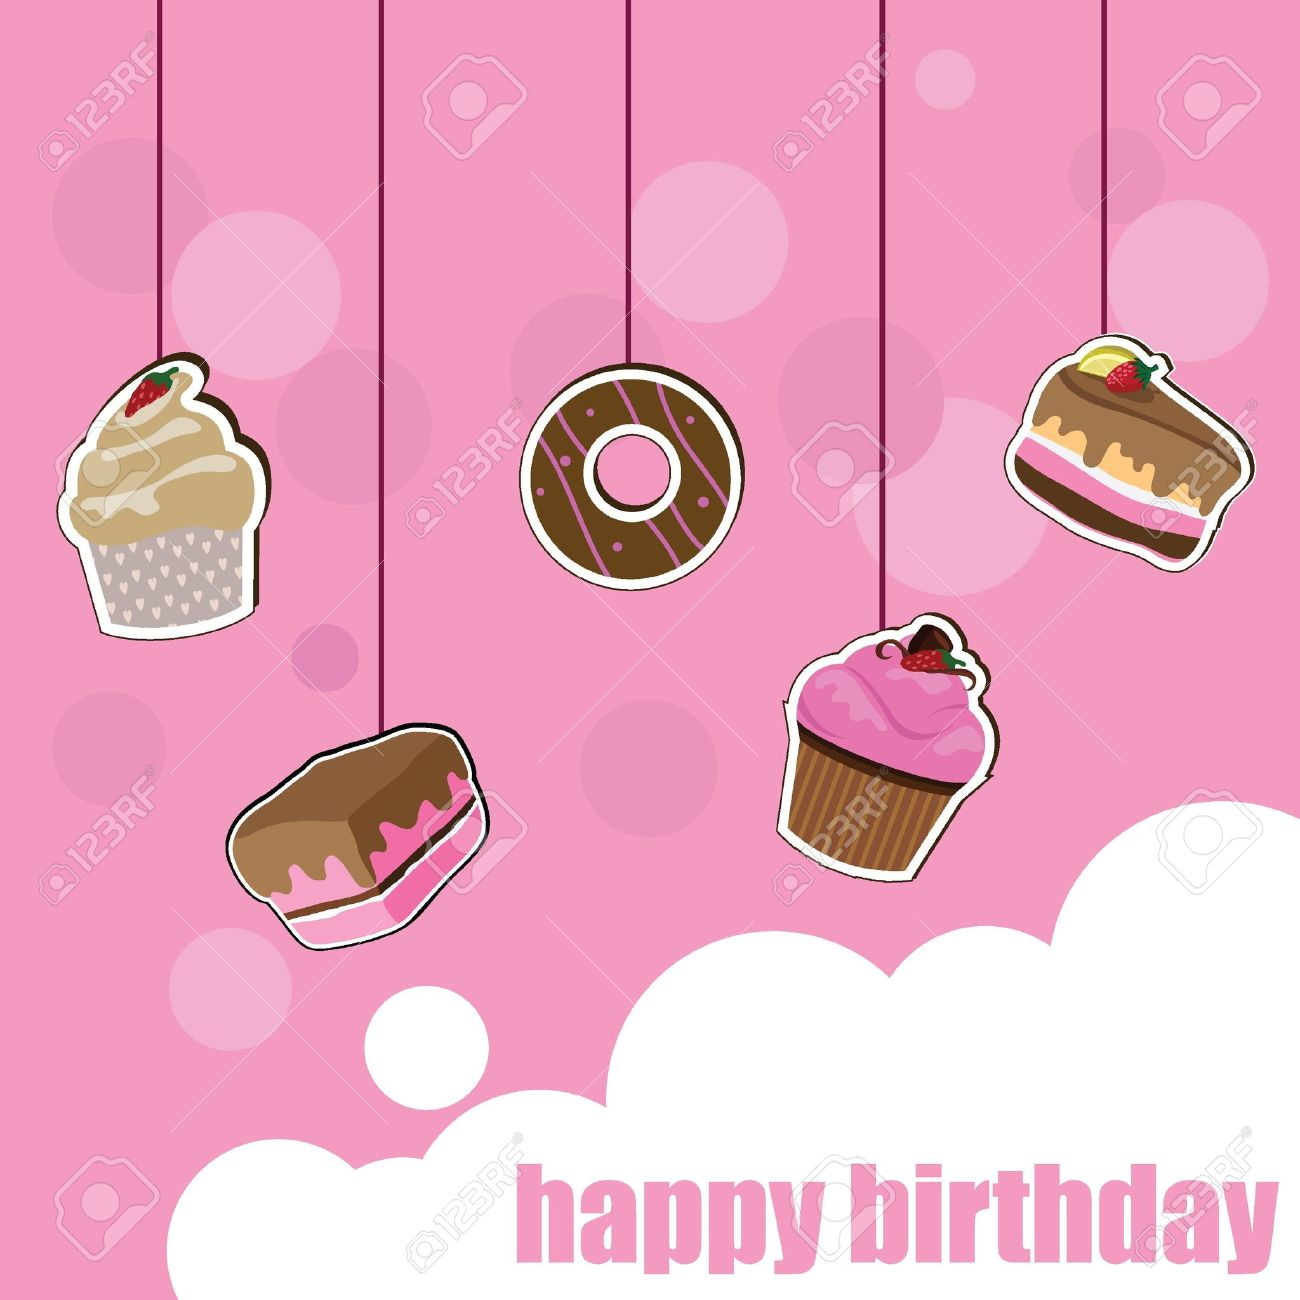 cup cake birthday card for birthday, kids, celebration and, Birthday card